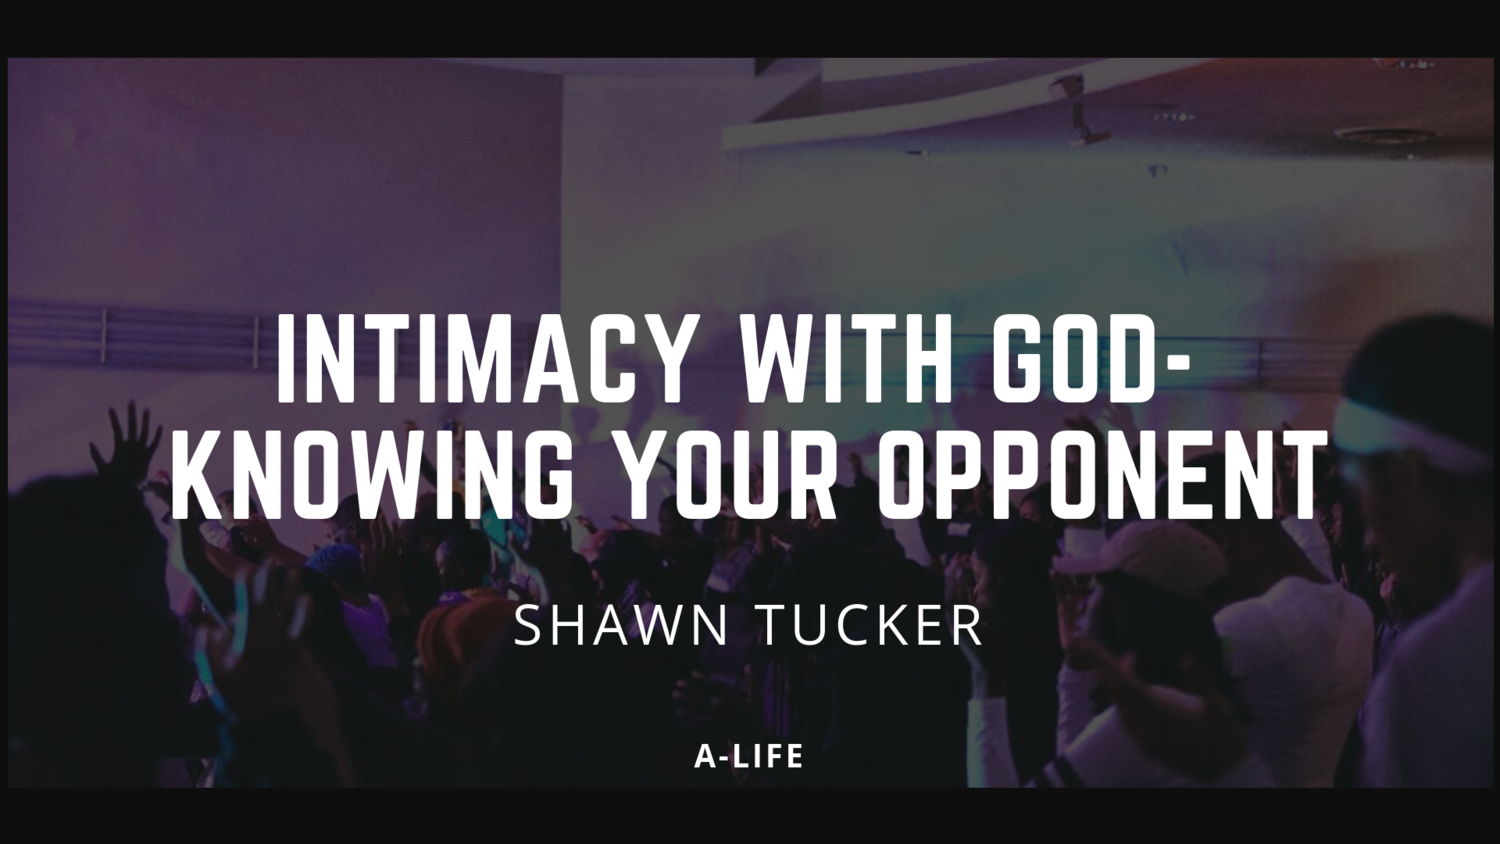 Intimacy+with+God-+Knowing+your+Opponent.png